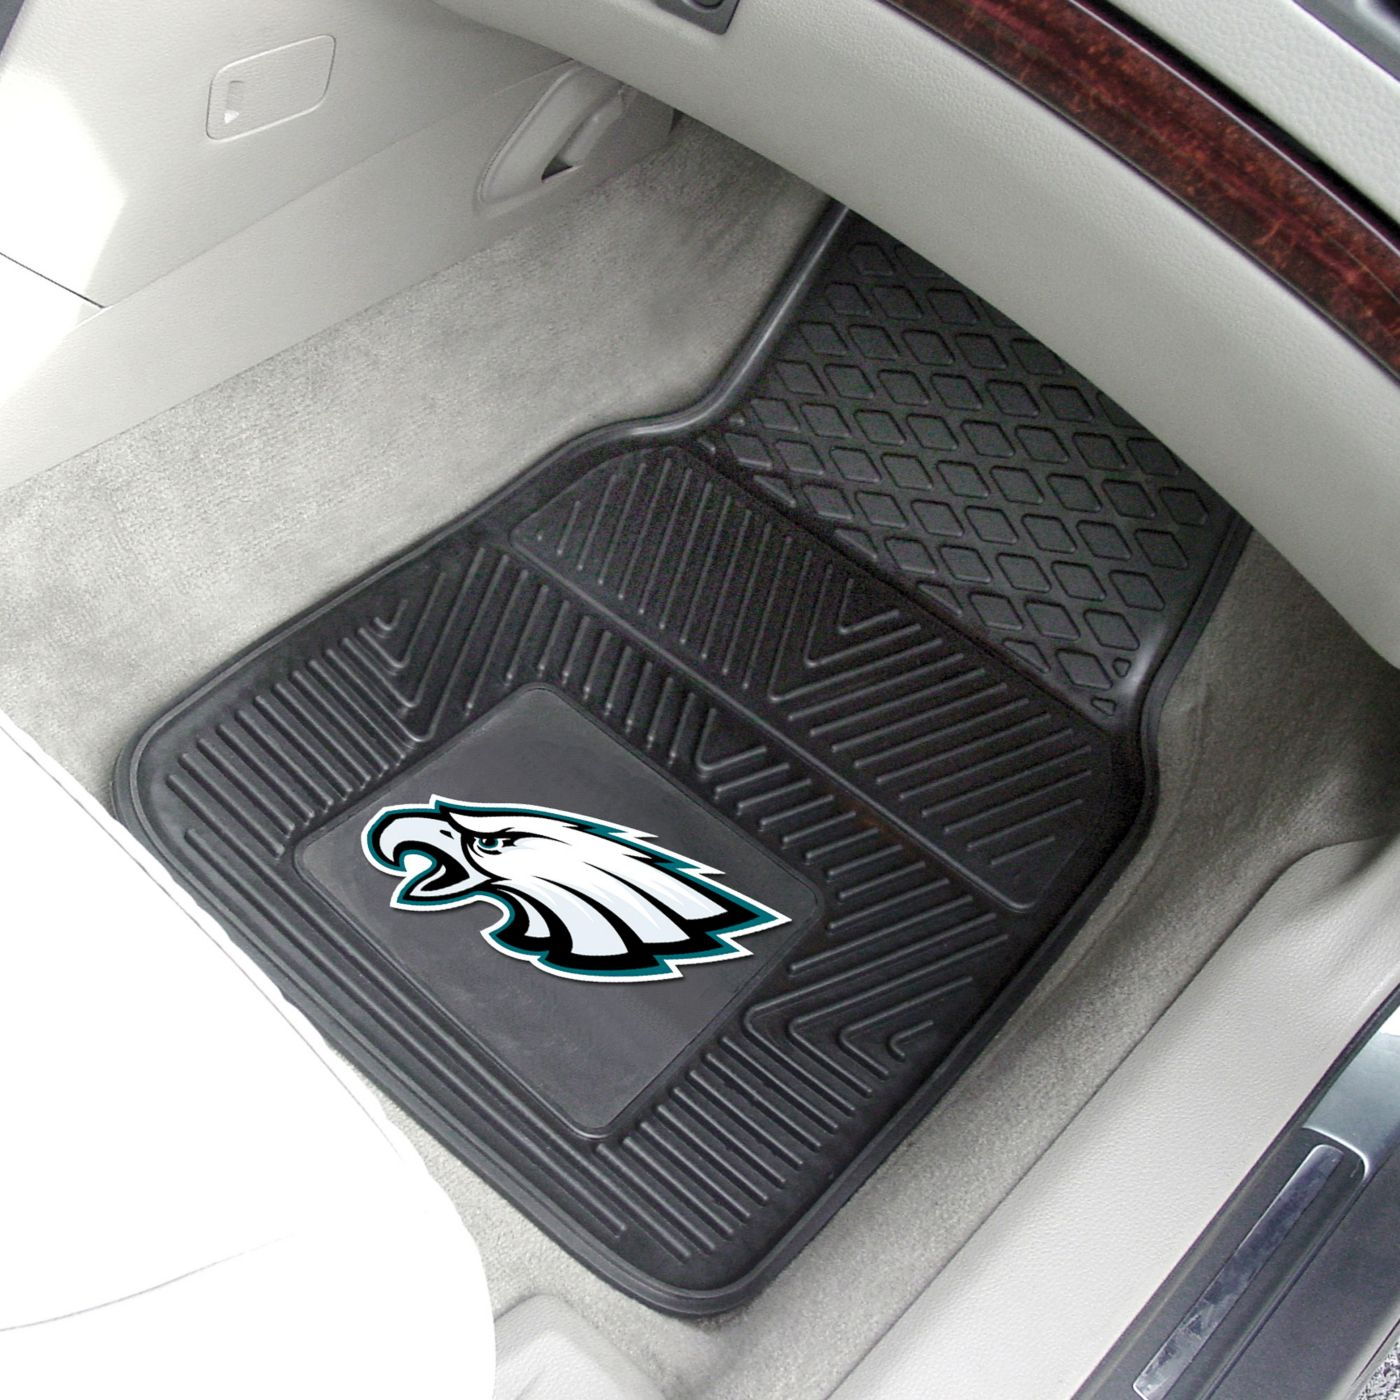 FANMATS Philadelphia Eagles 2-Piece Heavy Duty Vinyl Car Mat Set